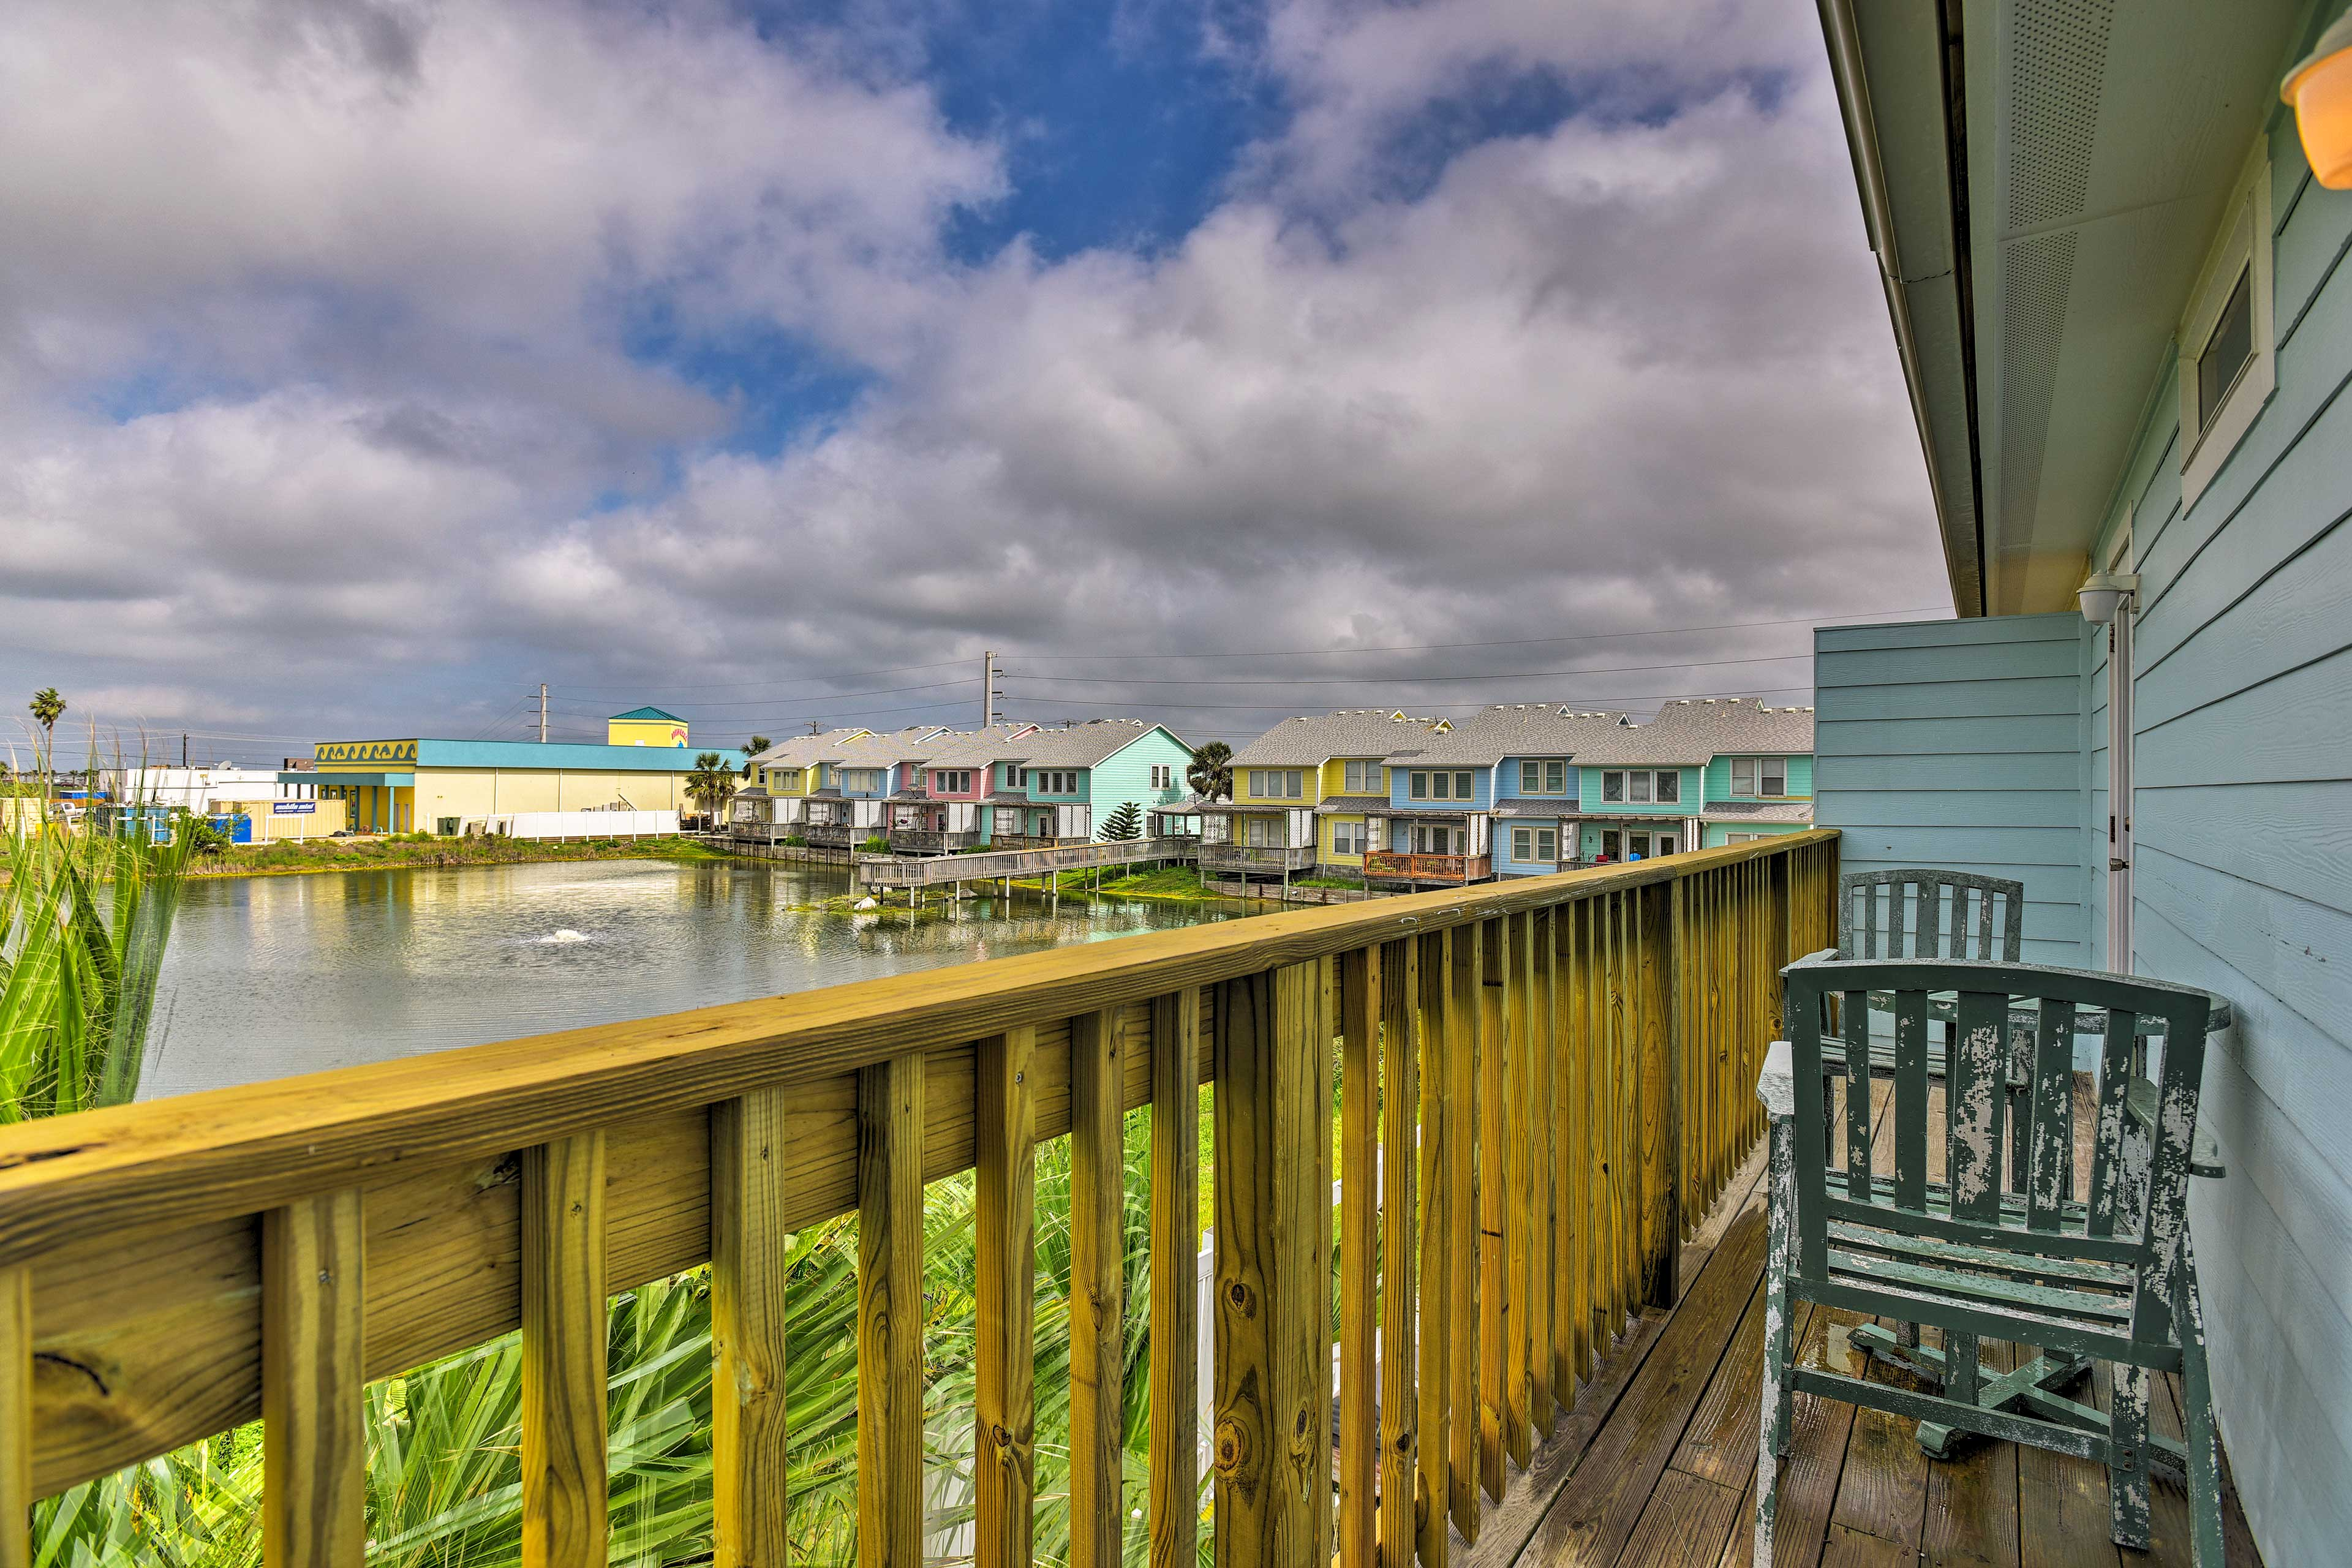 The deck looks out to waterfront views.